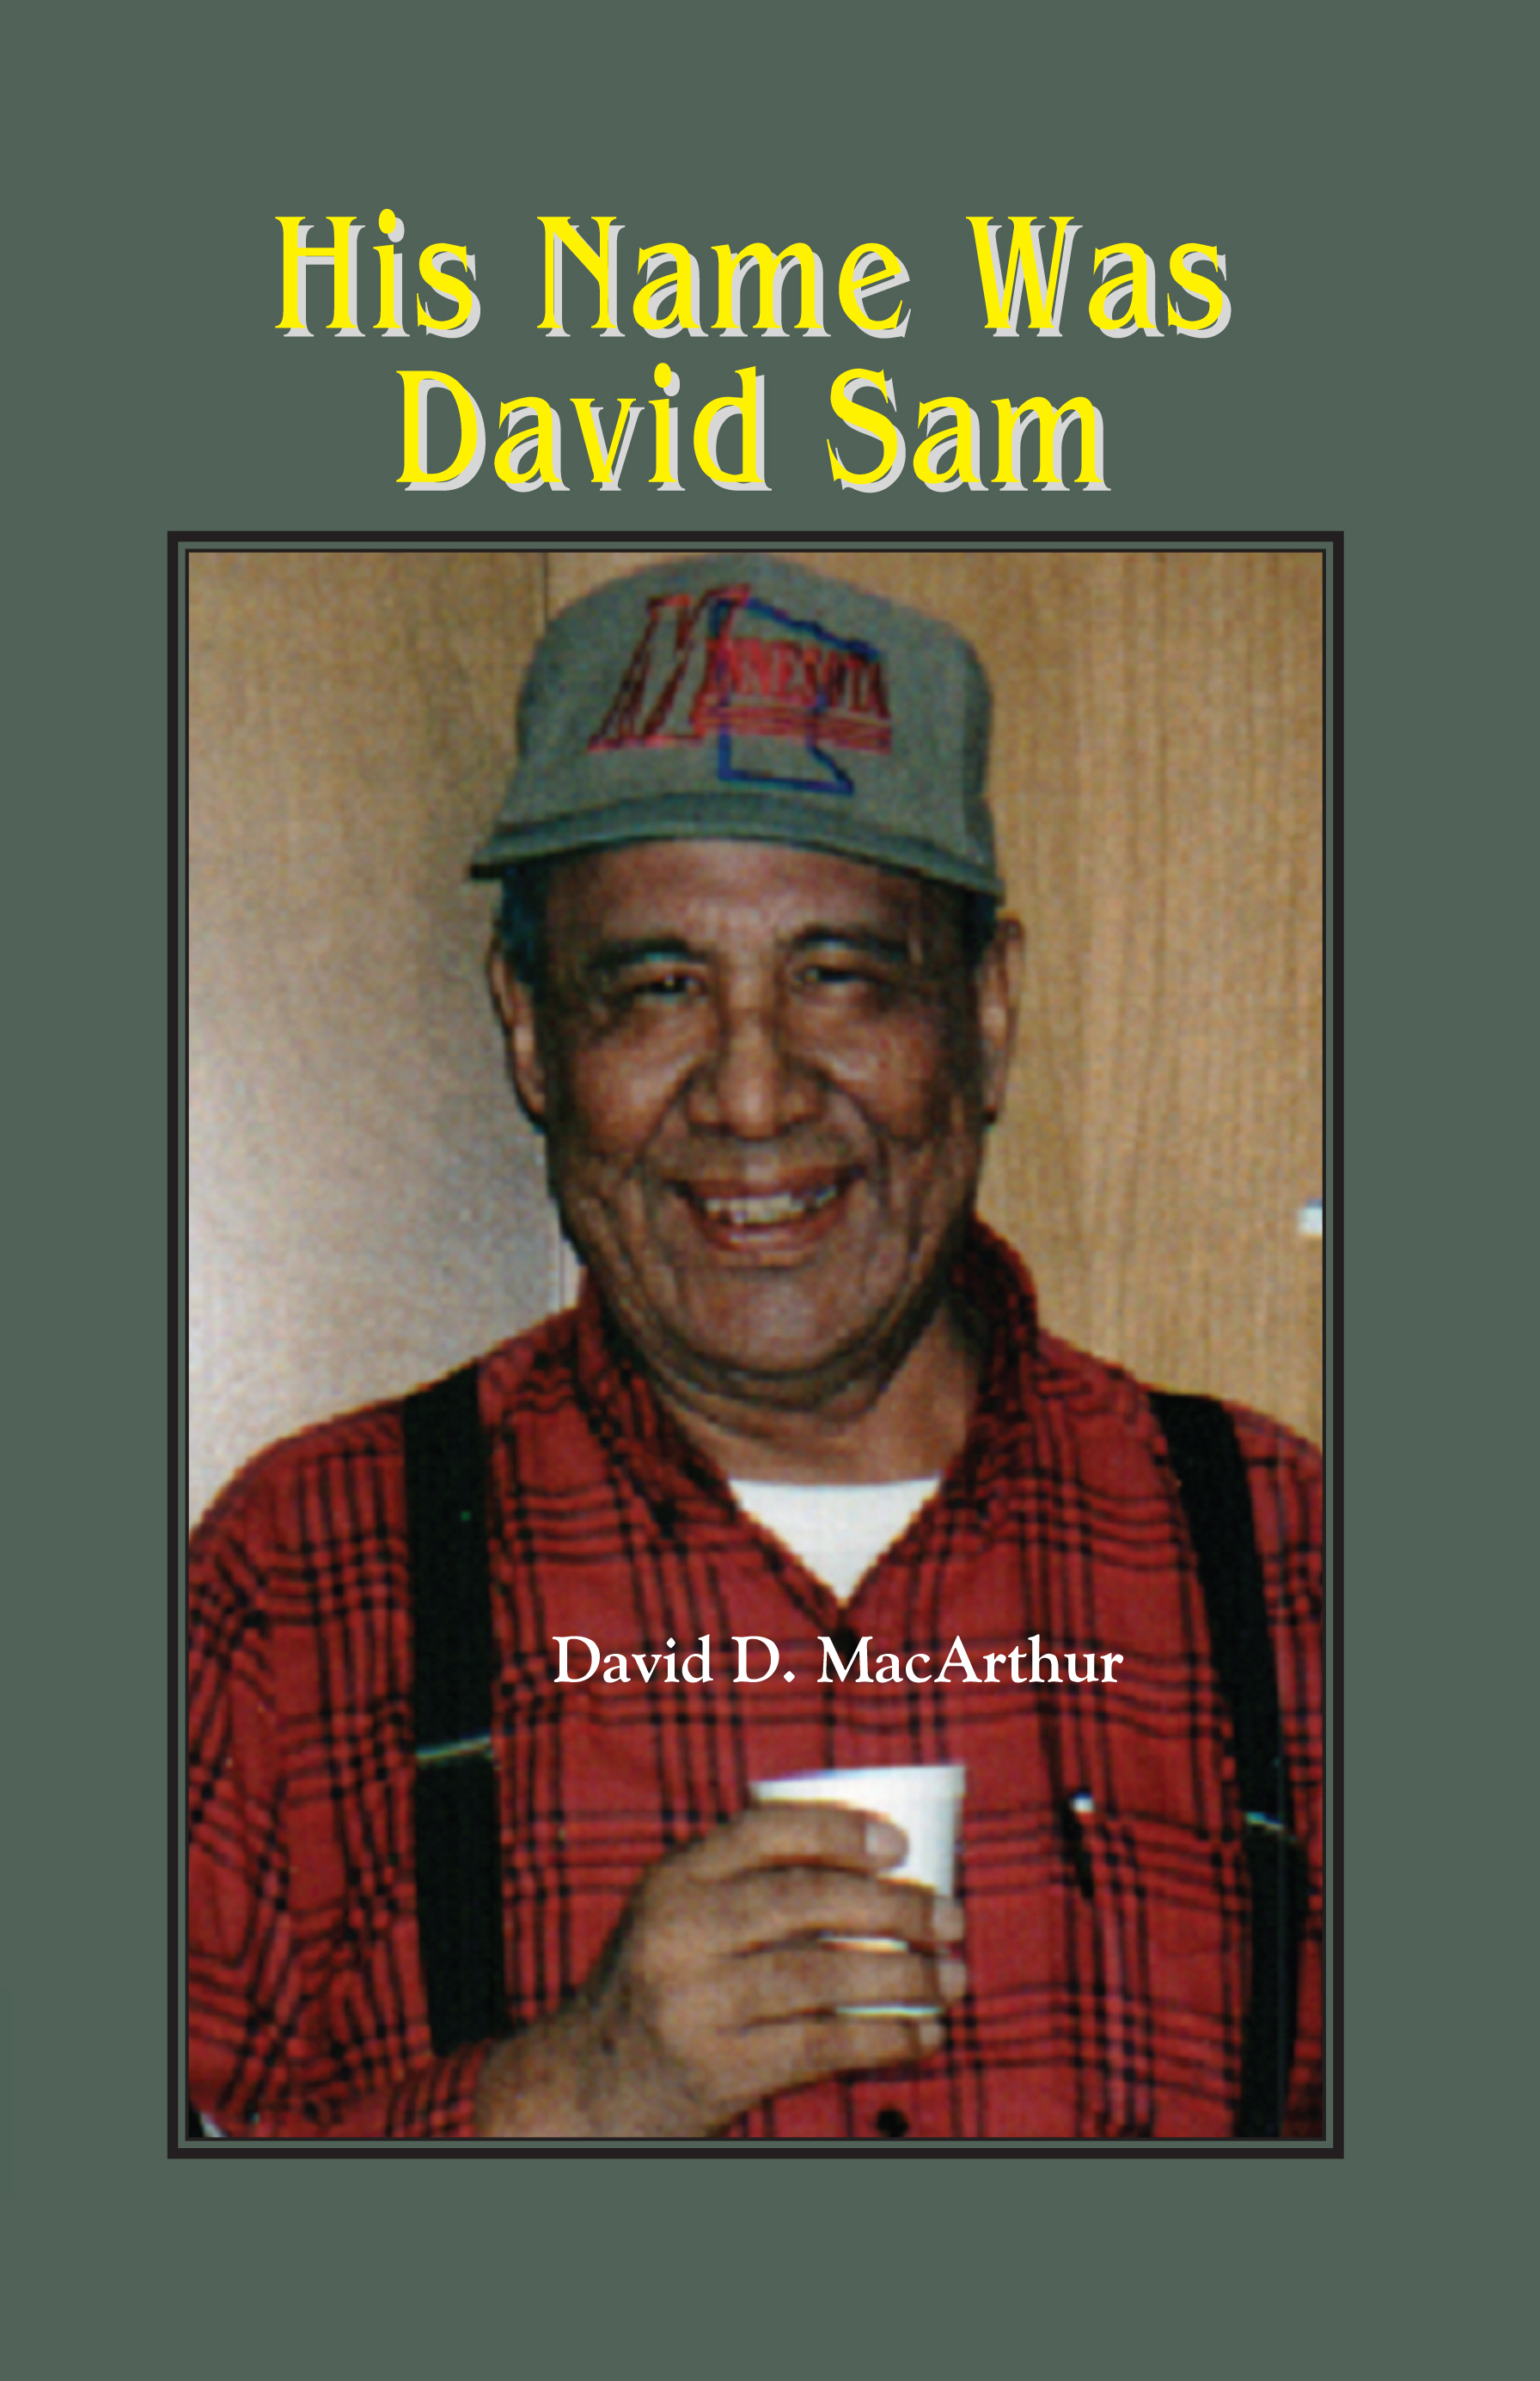 His Name Was David Sam